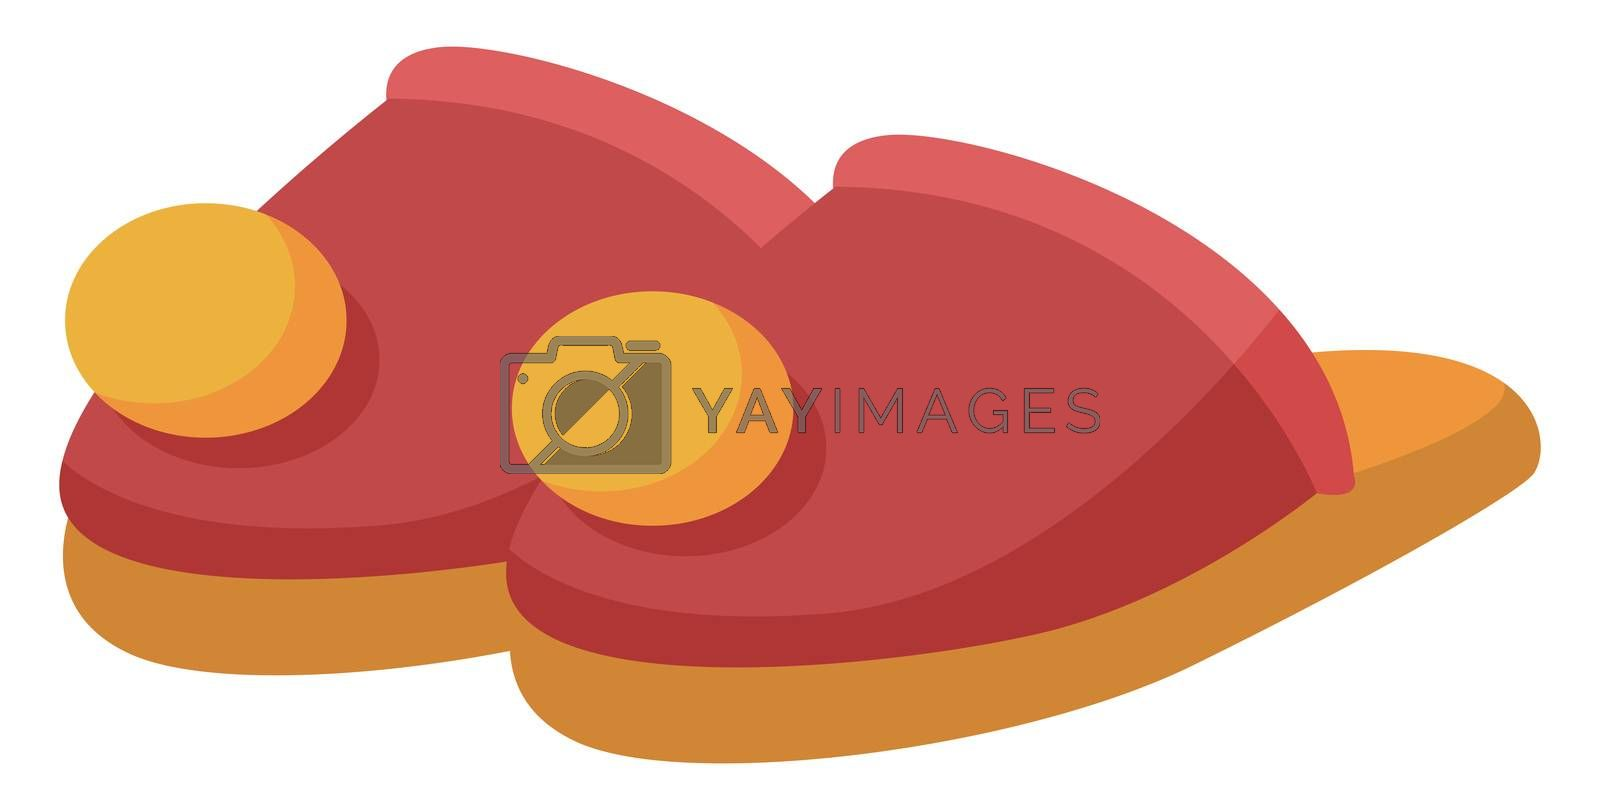 House shoes, illustration, vector on white background